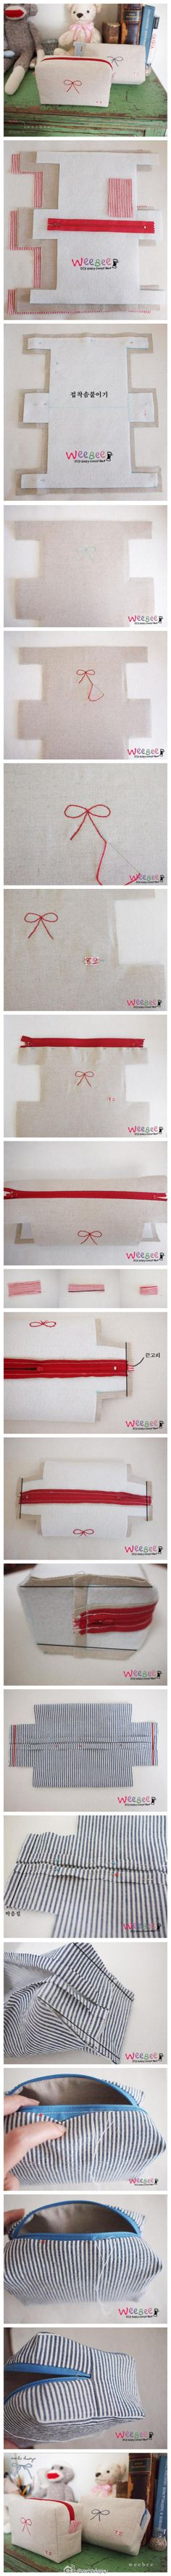 purse tutorial /neceser